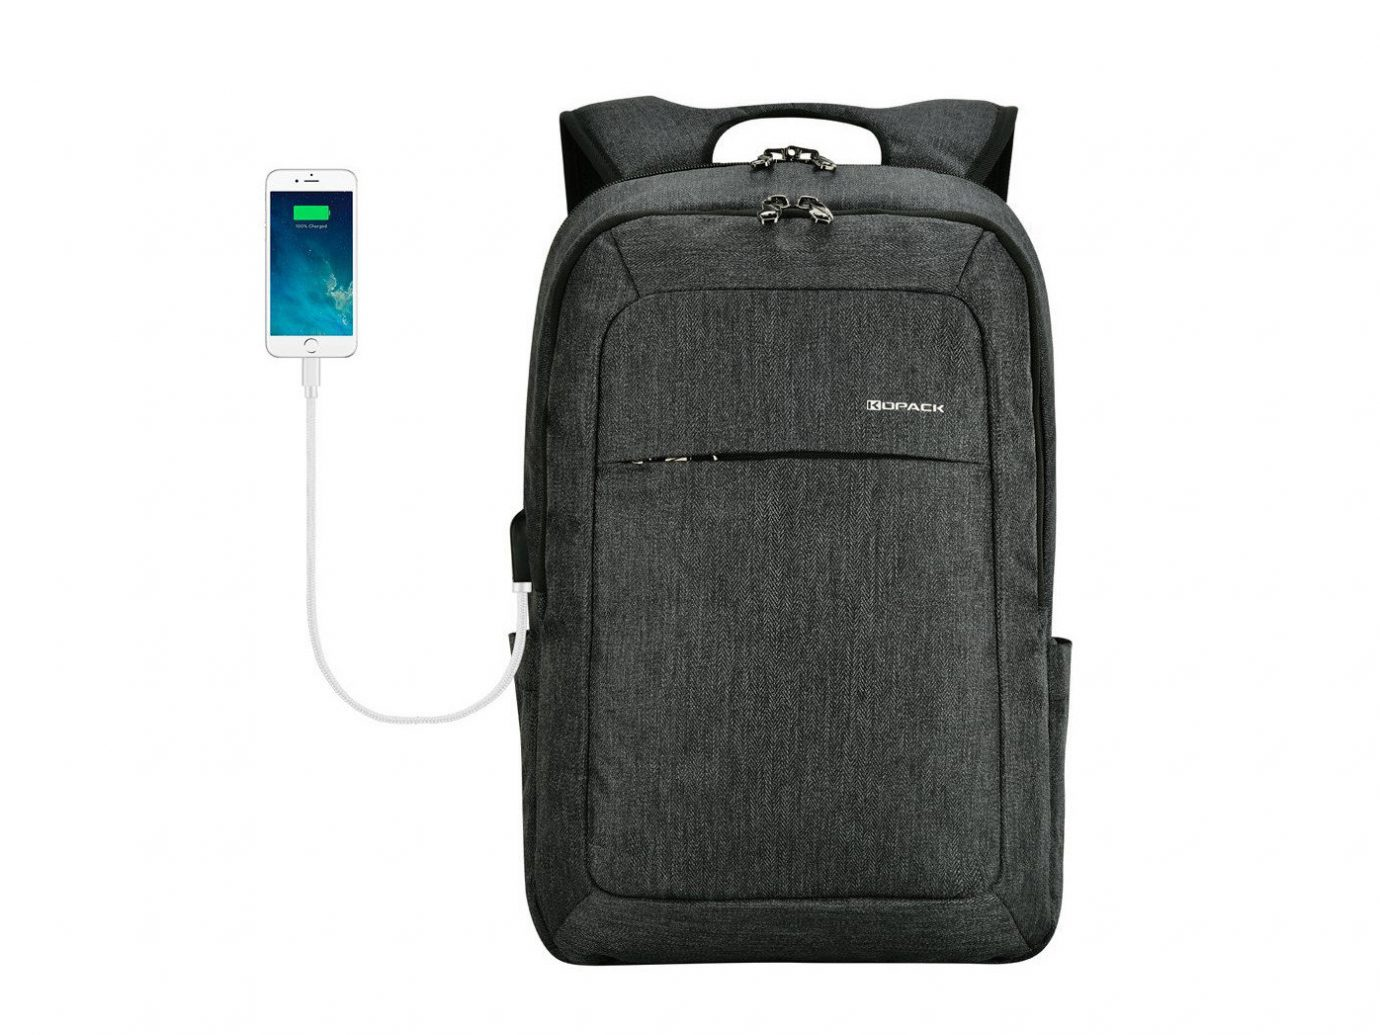 Packing Tips Solo Travel Travel Shop Travel Tips product bag telephony backpack product design hand luggage mobile phone accessories